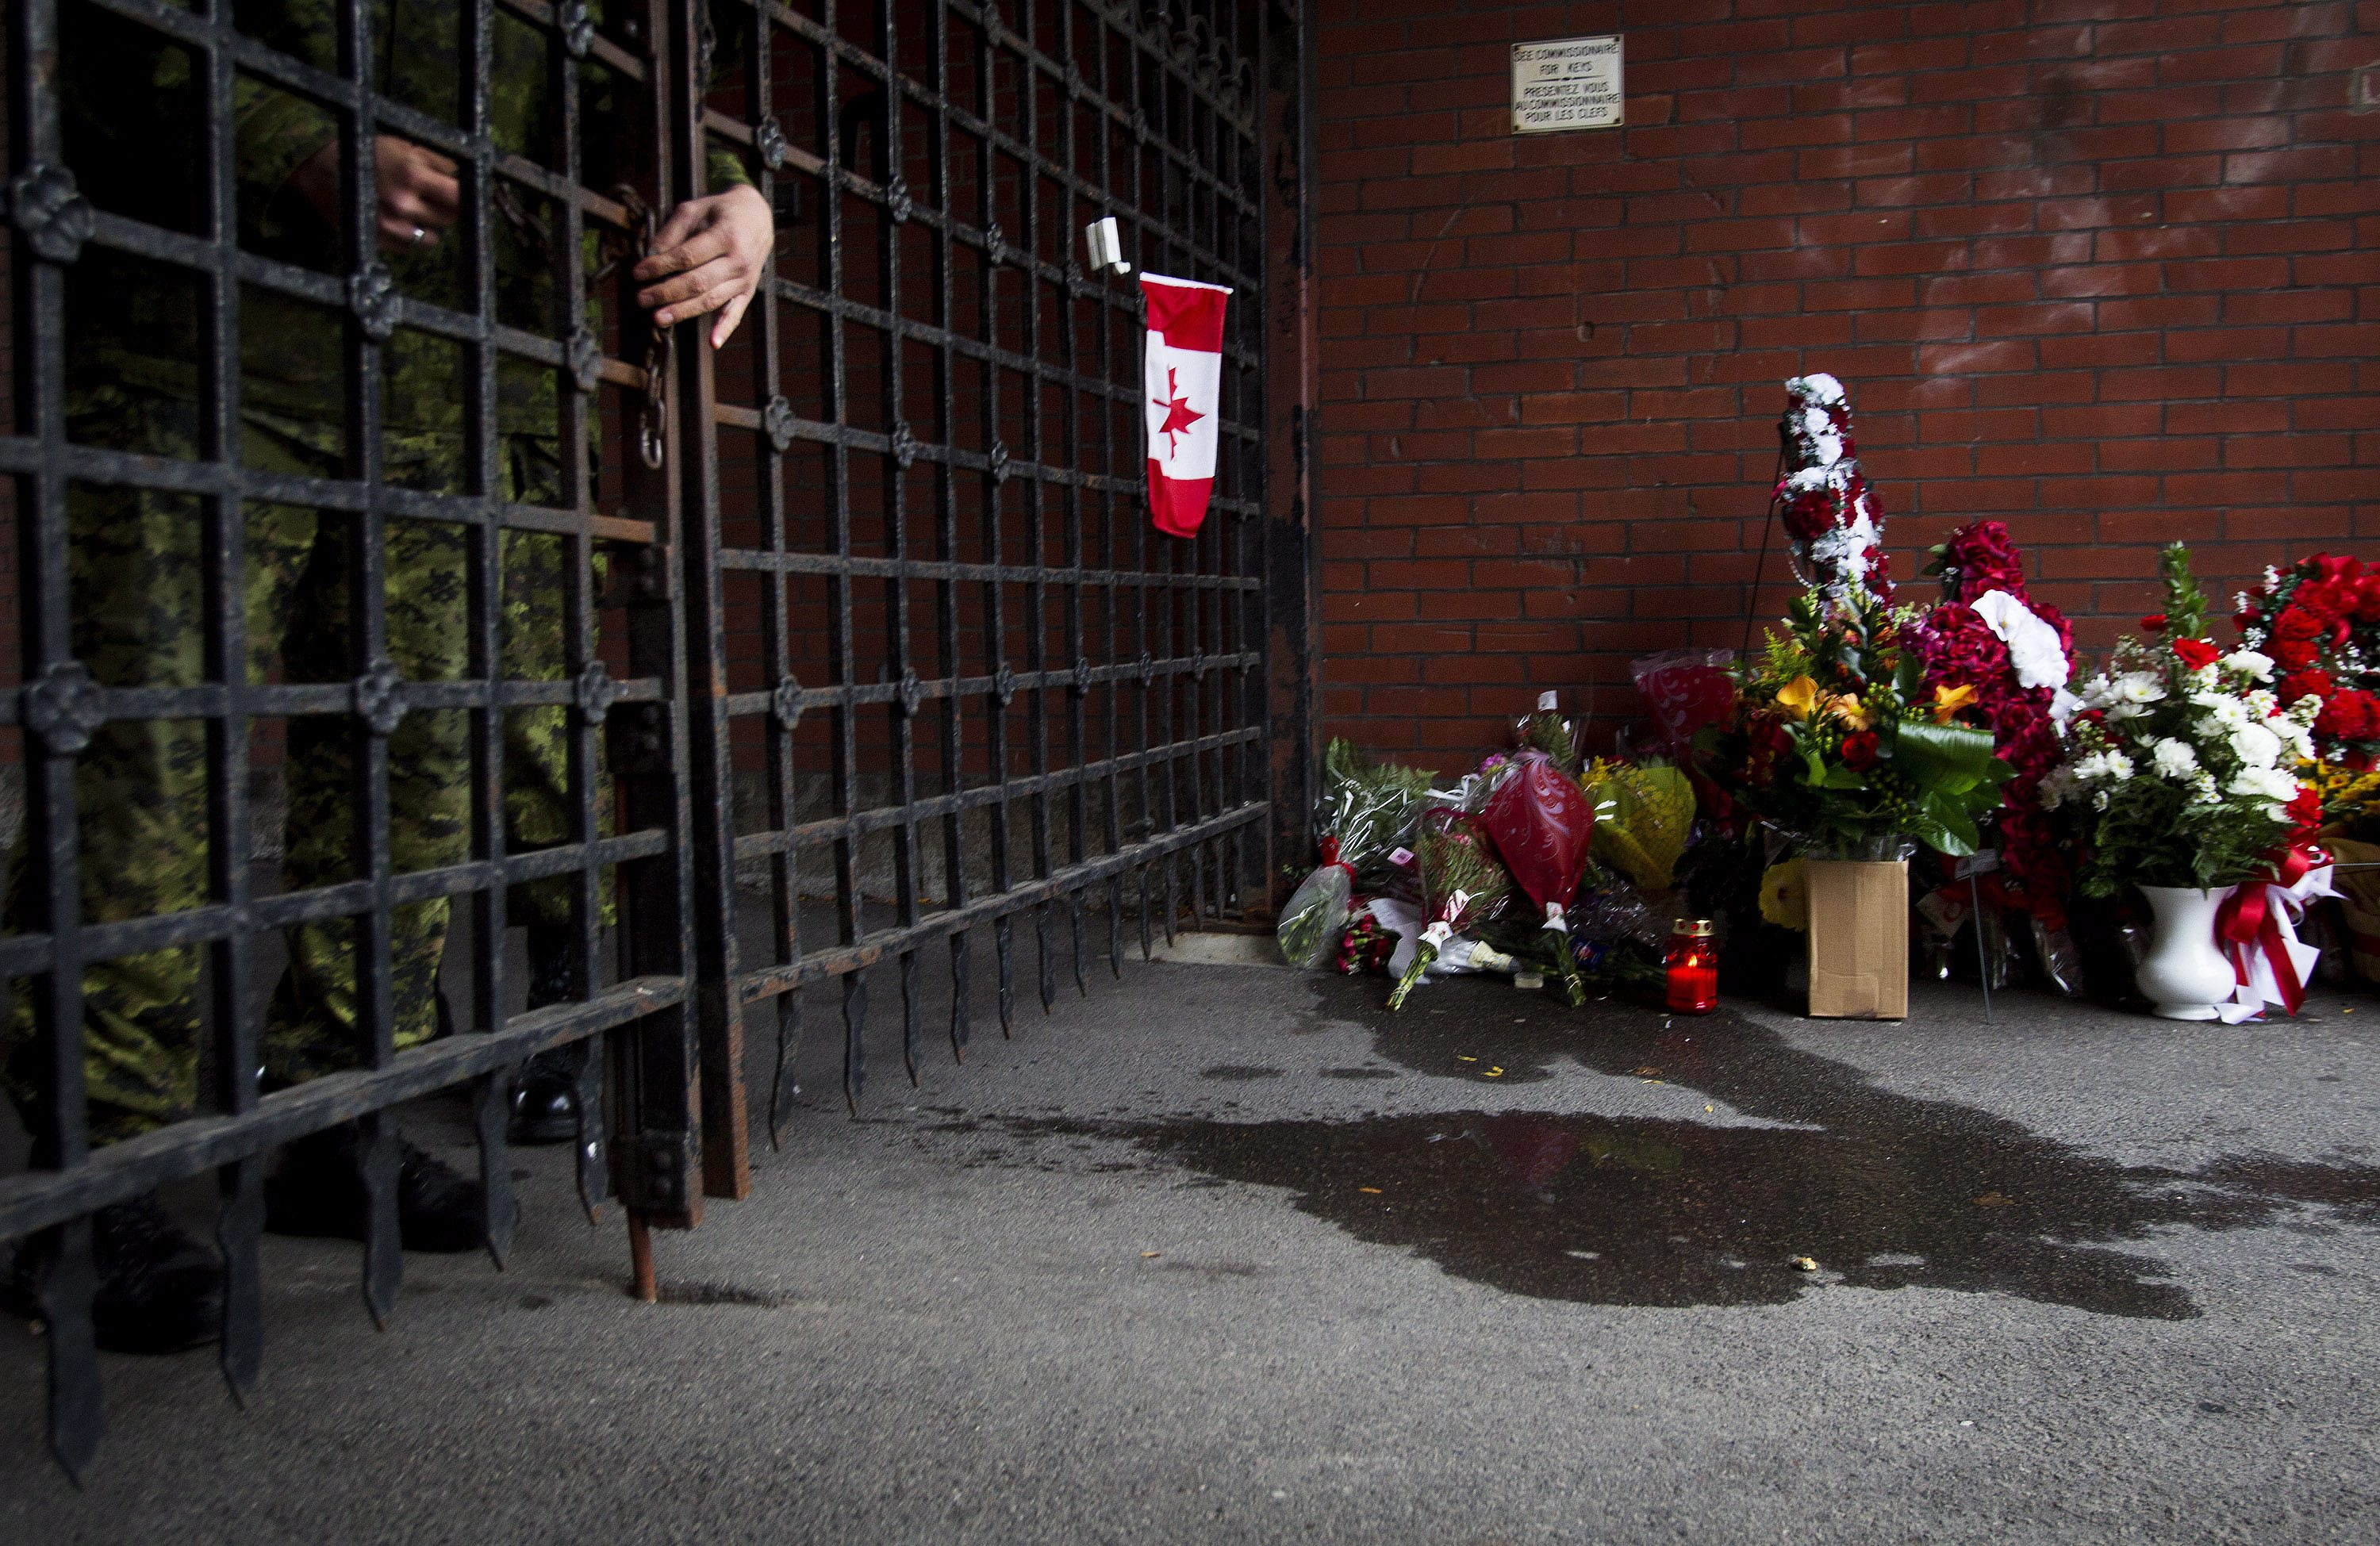 A soldier locks the gates as flowers are placed at a memorial outside the gates of the John Weir Foote Armory, the home of the Argyll and Sutherland Highlanders of Canada in Hamilton, Ontario, on Oct. 22, 2014, in memory of Canadian soldier Nathan Cirillo